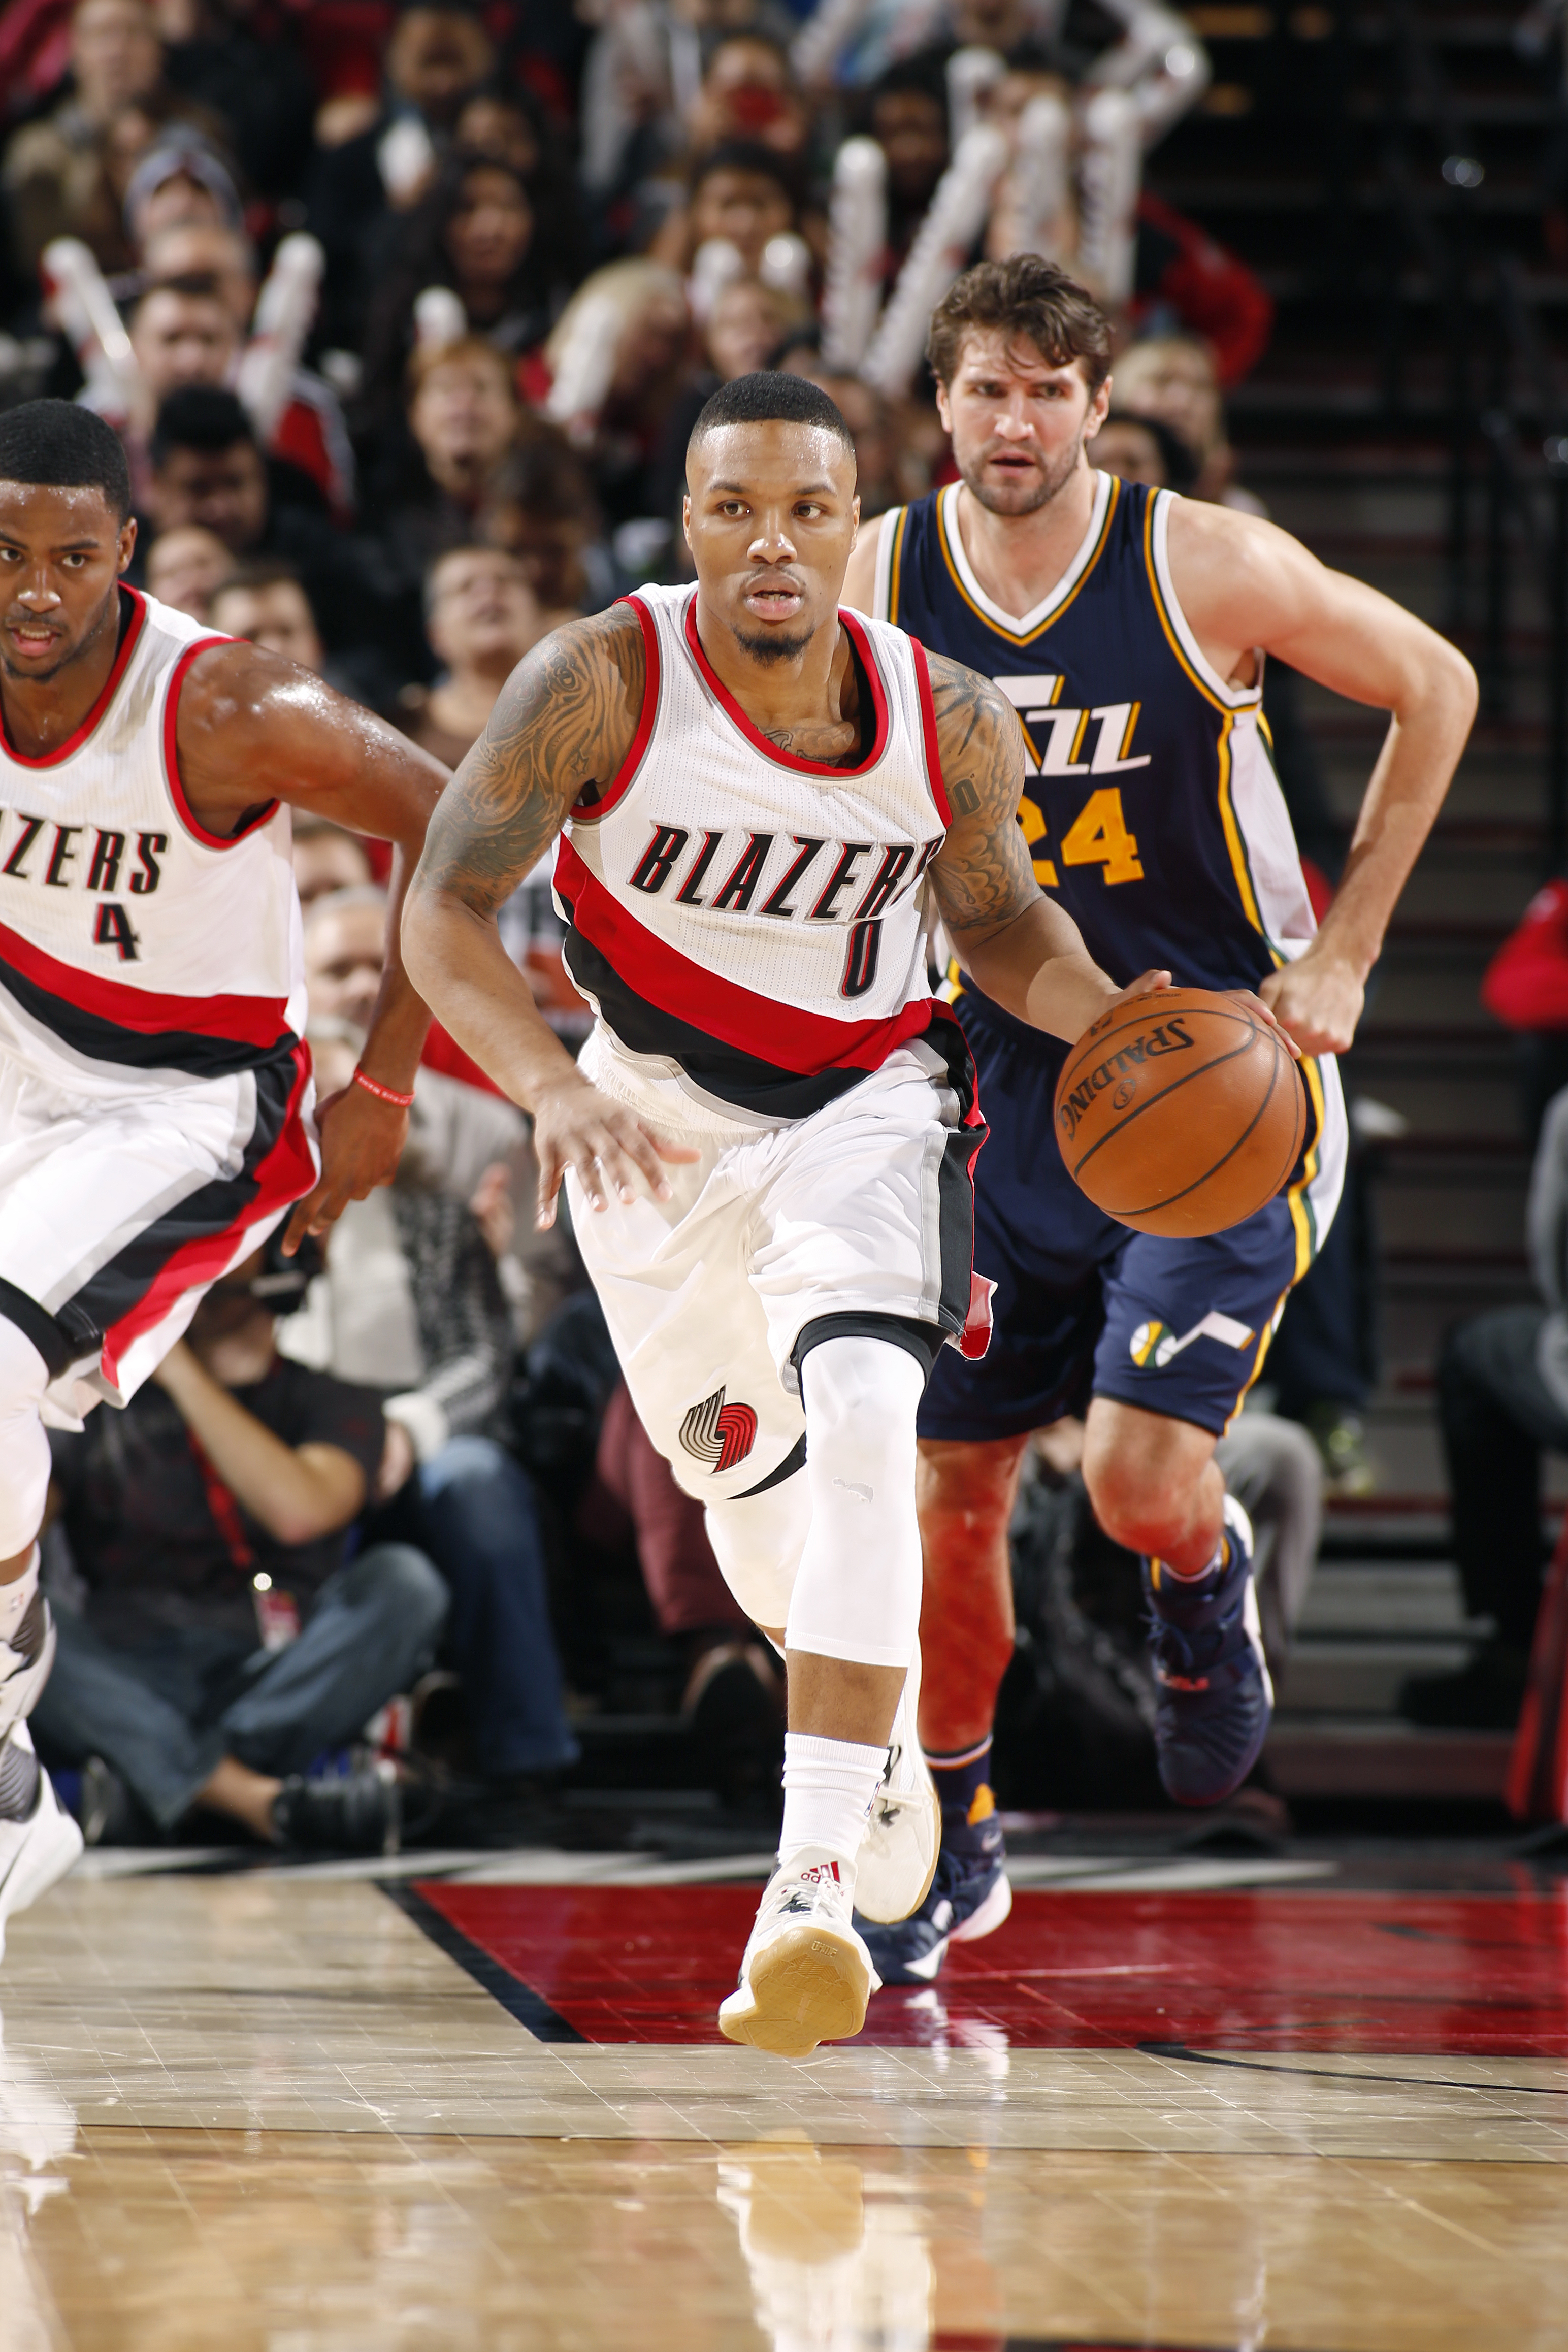 PORTLAND, OR - JANUARY 13: Damian Lillard #0 of the Portland Trail Blazers handles the ball during the game against the Utah Jazz on January 13, 2016 at the Moda Center in Portland, Oregon. (Photo by Cameron Browne/NBAE via Getty Images)